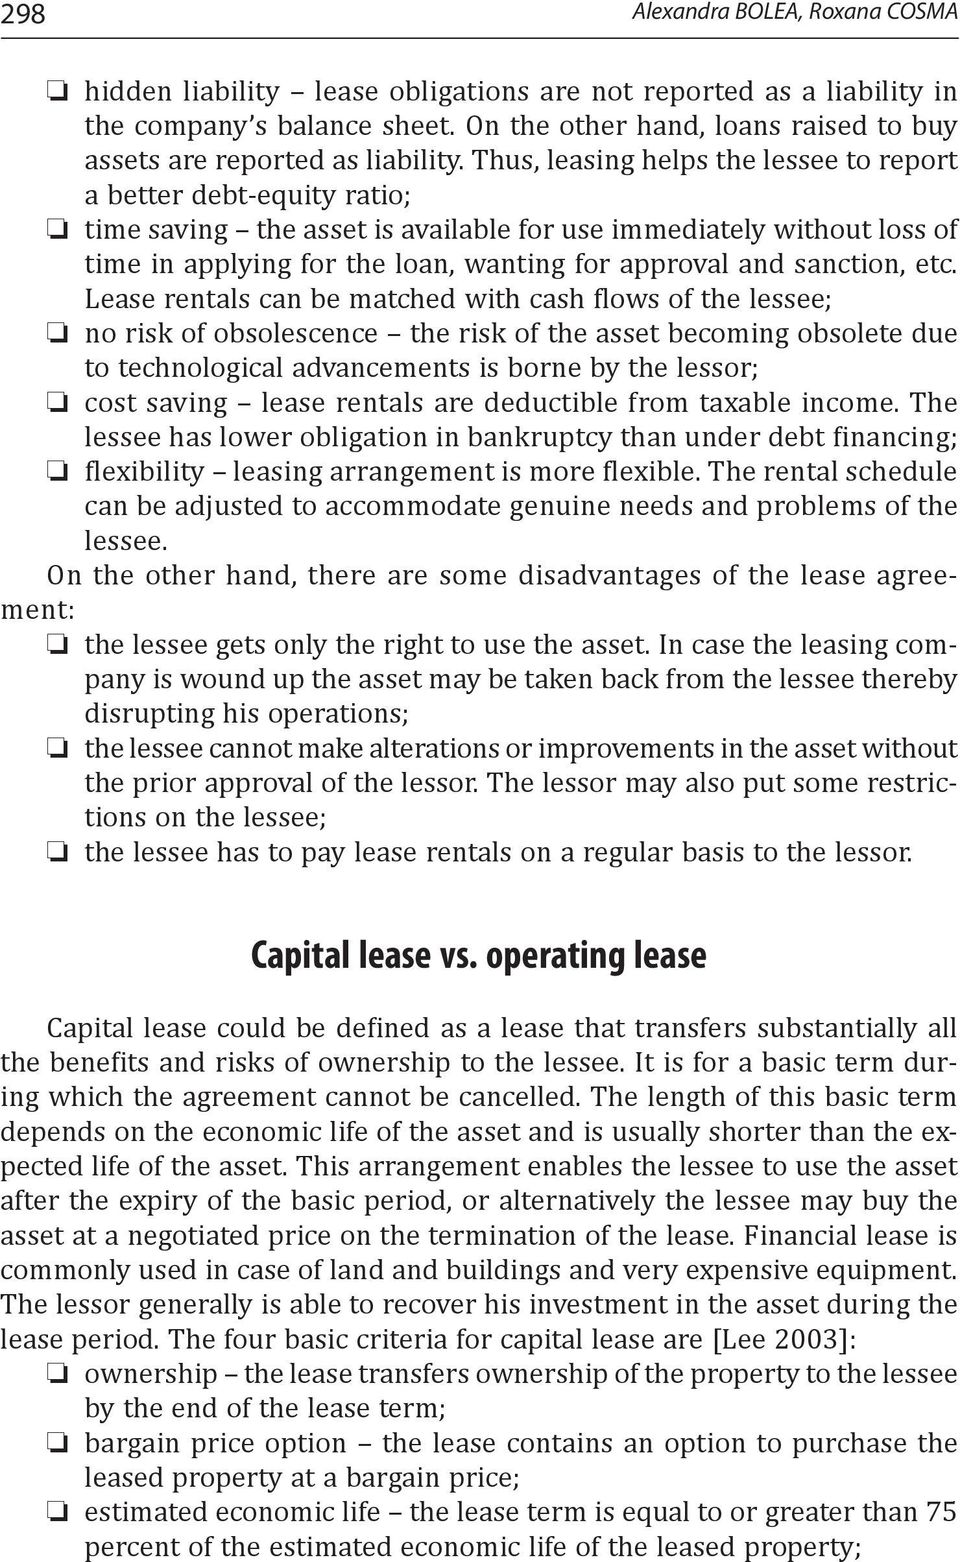 Thus, leasing helps the lessee to report a better debt-equity ratio; time saving the asset is available for use immediately without loss of time in applying for the loan, wanting for approval and